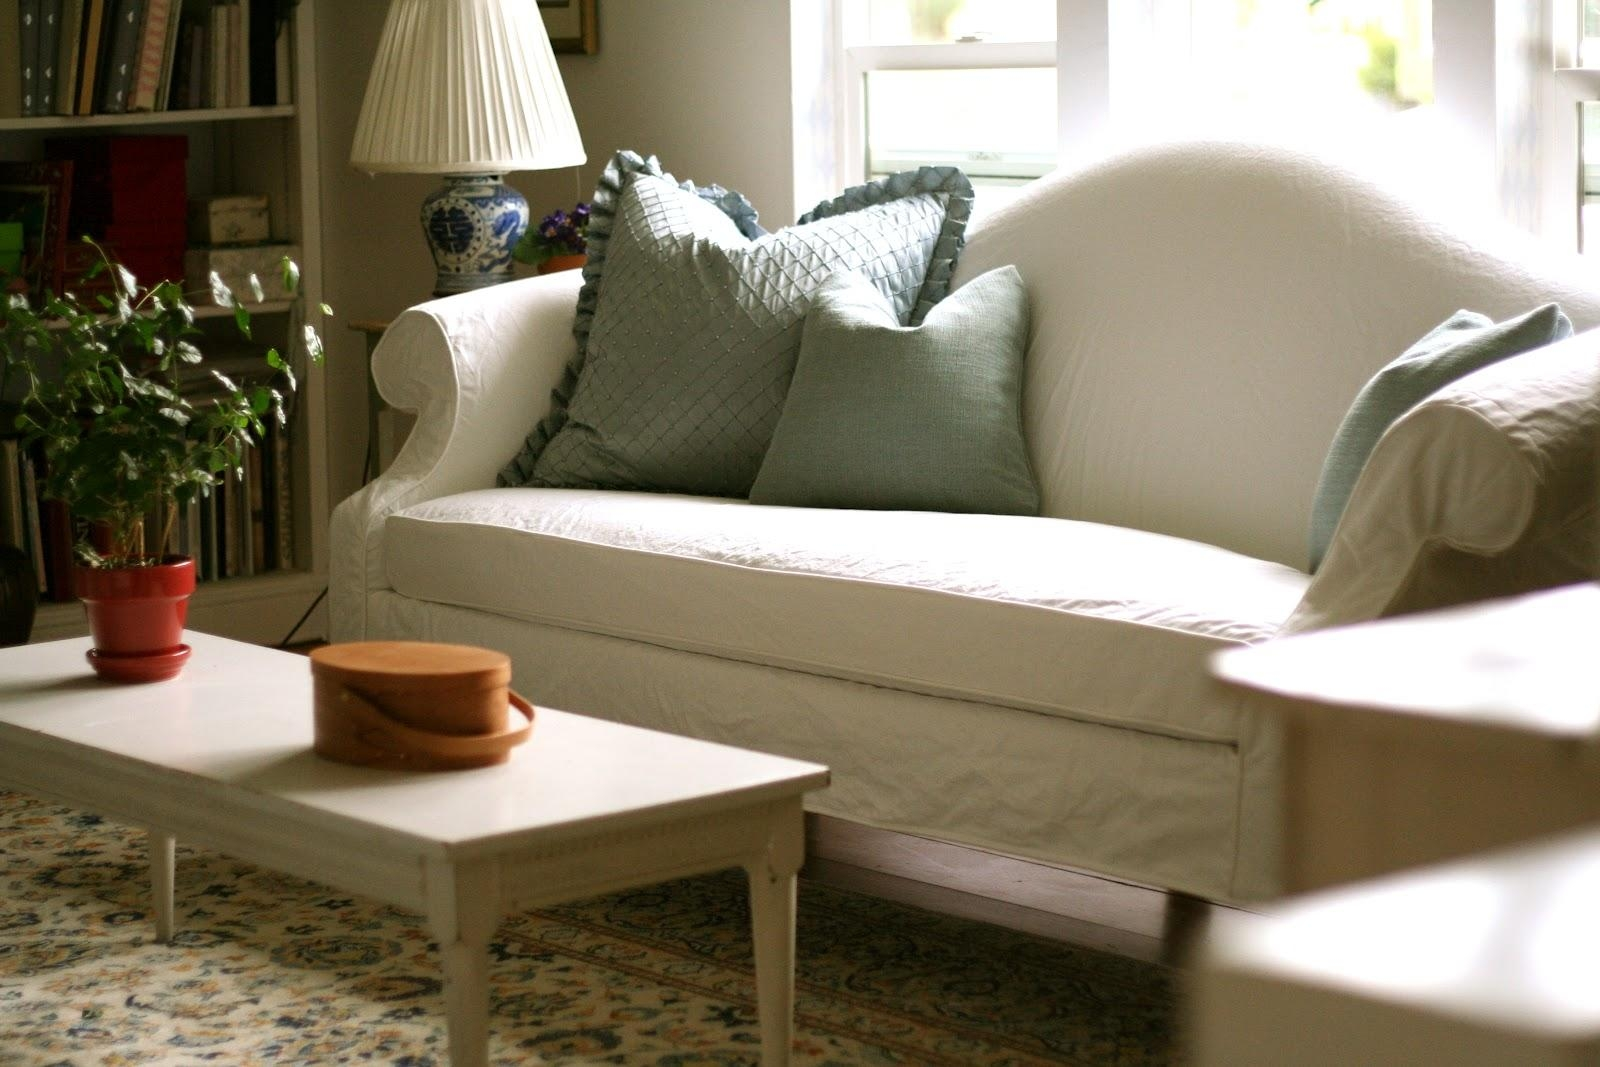 Custom Slipcoversshelley: White Camel Back Couch Intended For Camel Back Couch Slipcovers (Image 6 of 20)